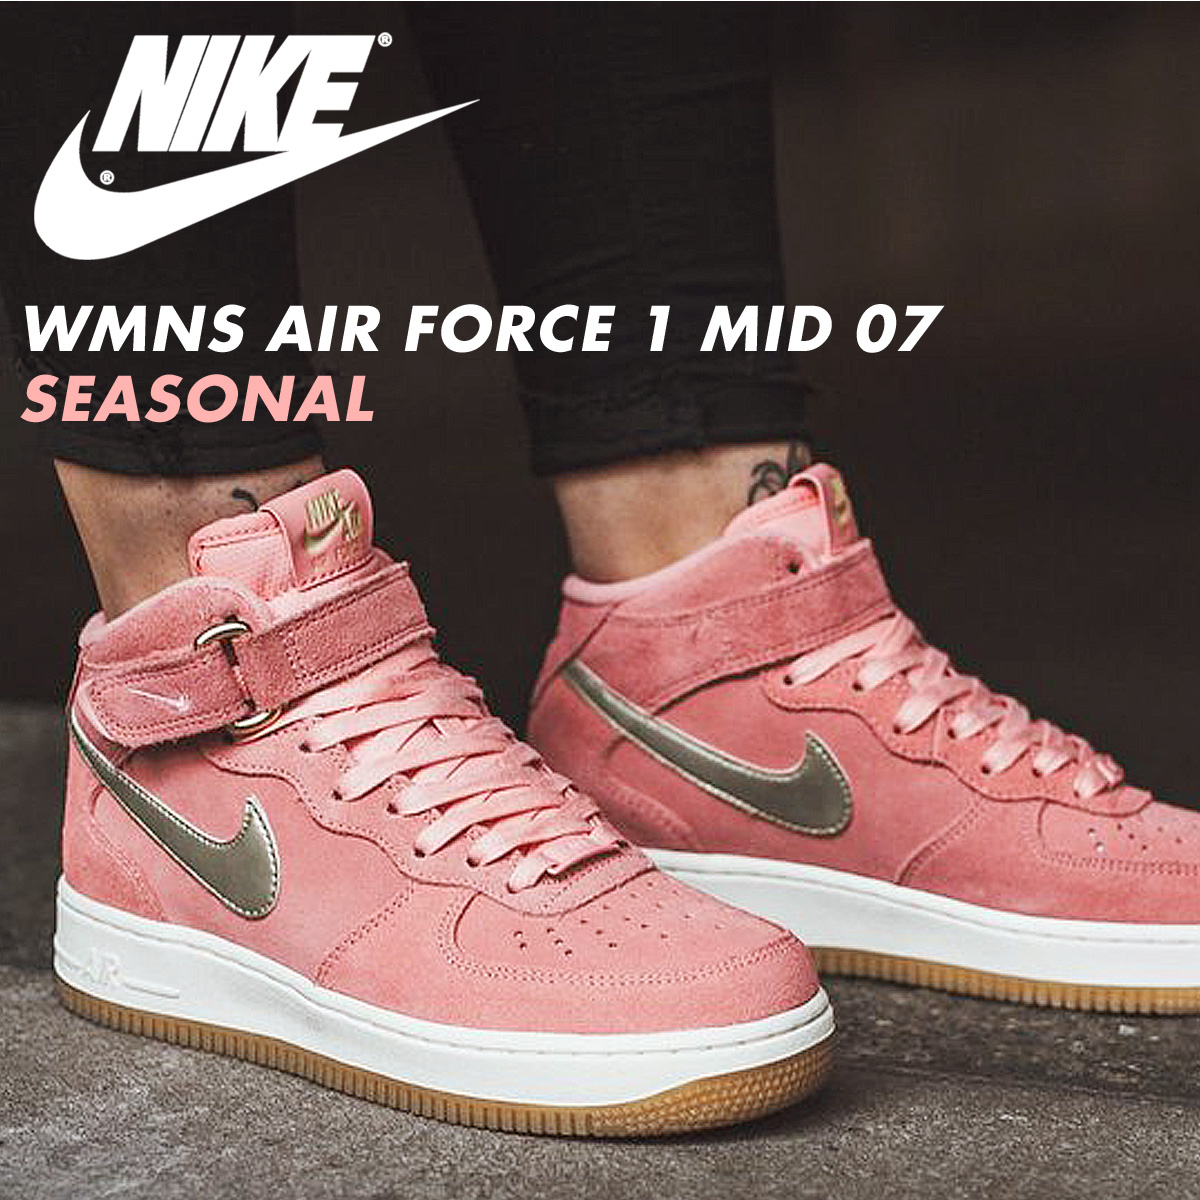 NIKE Nike air force 1 sneakers WMNS AIR FORCE 1 MID 07 SEASONAL 818,596 800 men's lady's shoes pink [89 Shinnyu load] [178]